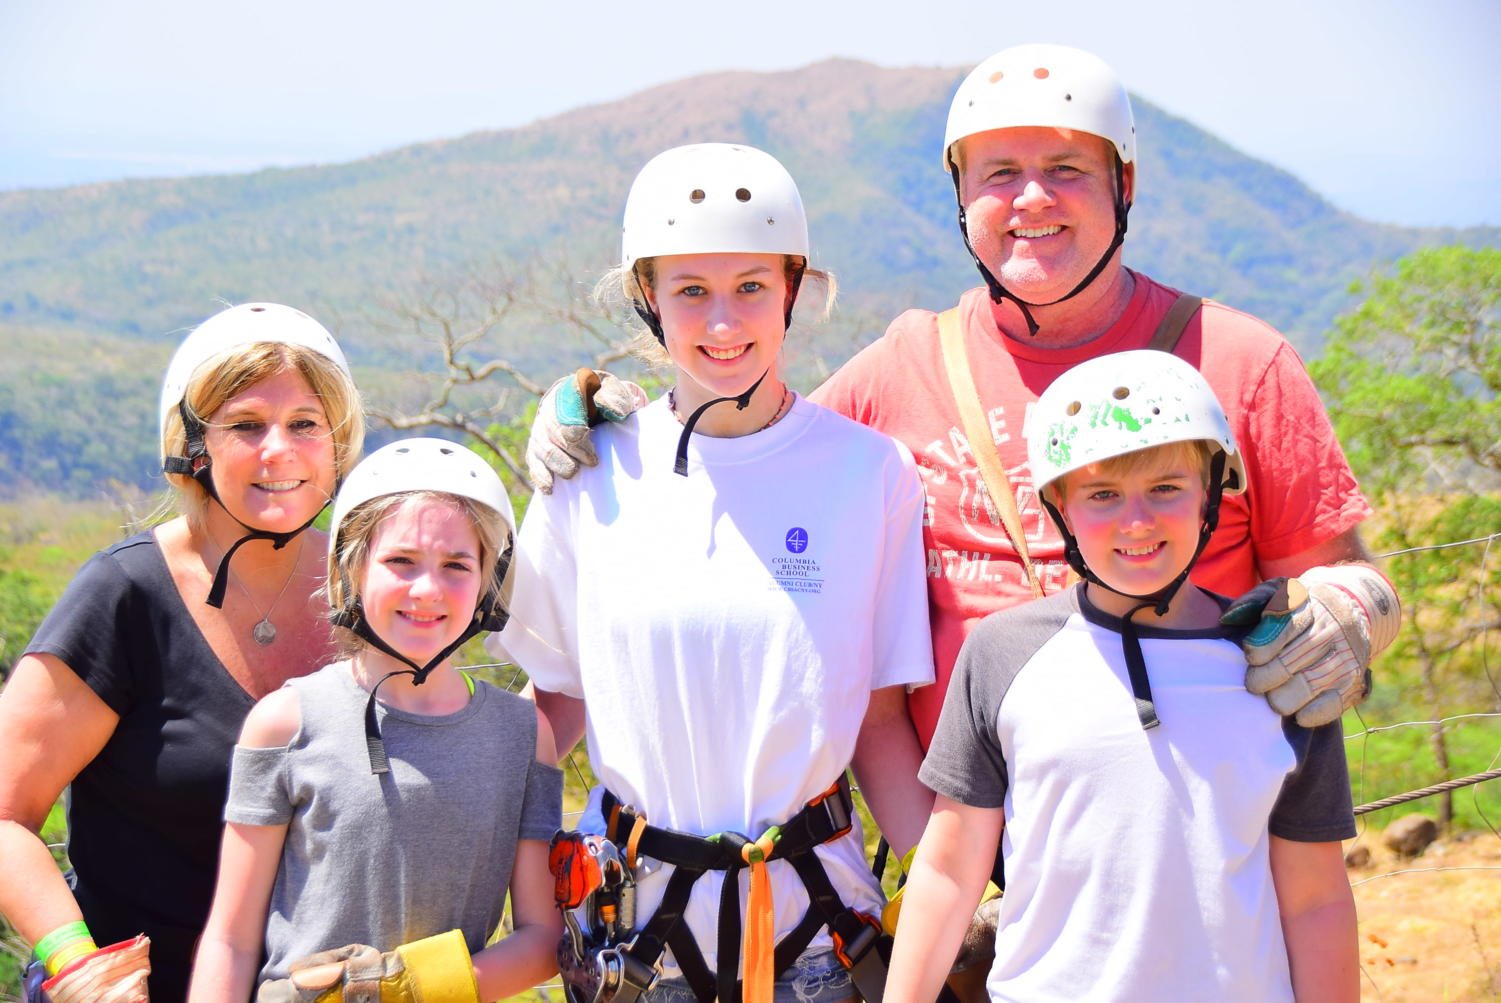 Ainsley Bryant, accompanied by her parents and siblings, prepare to go ziplining in Guanacaste, Costa Rica.